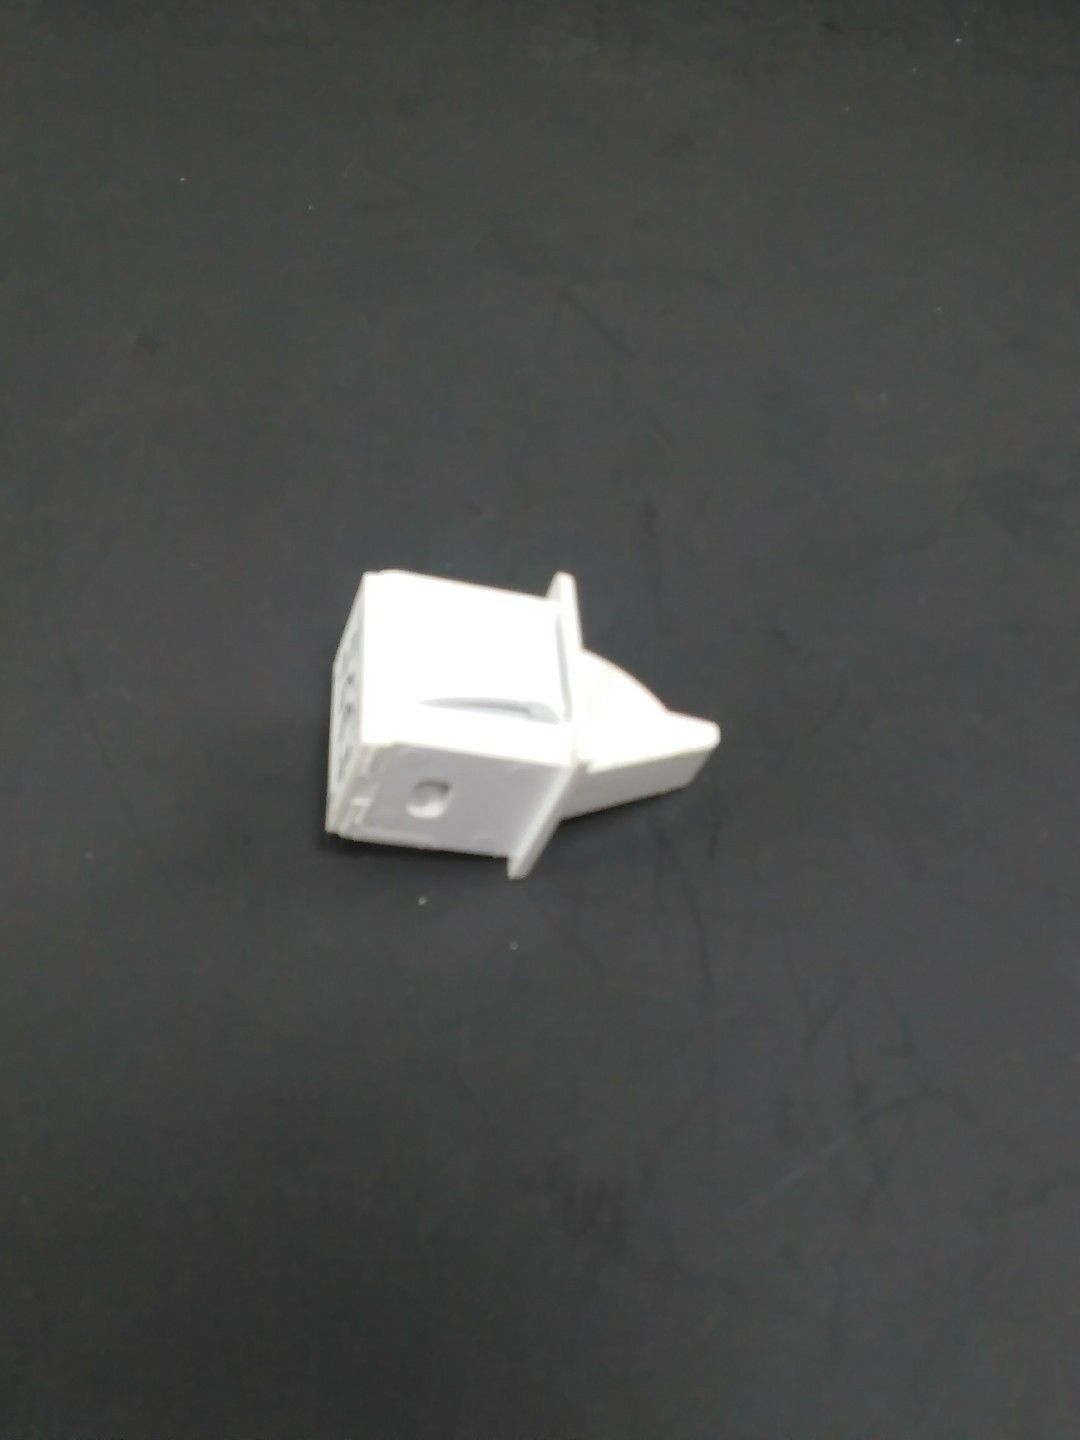 Frigidaire light switch 2405058801 white Westinghouse Gibson units Crosley - $6.80